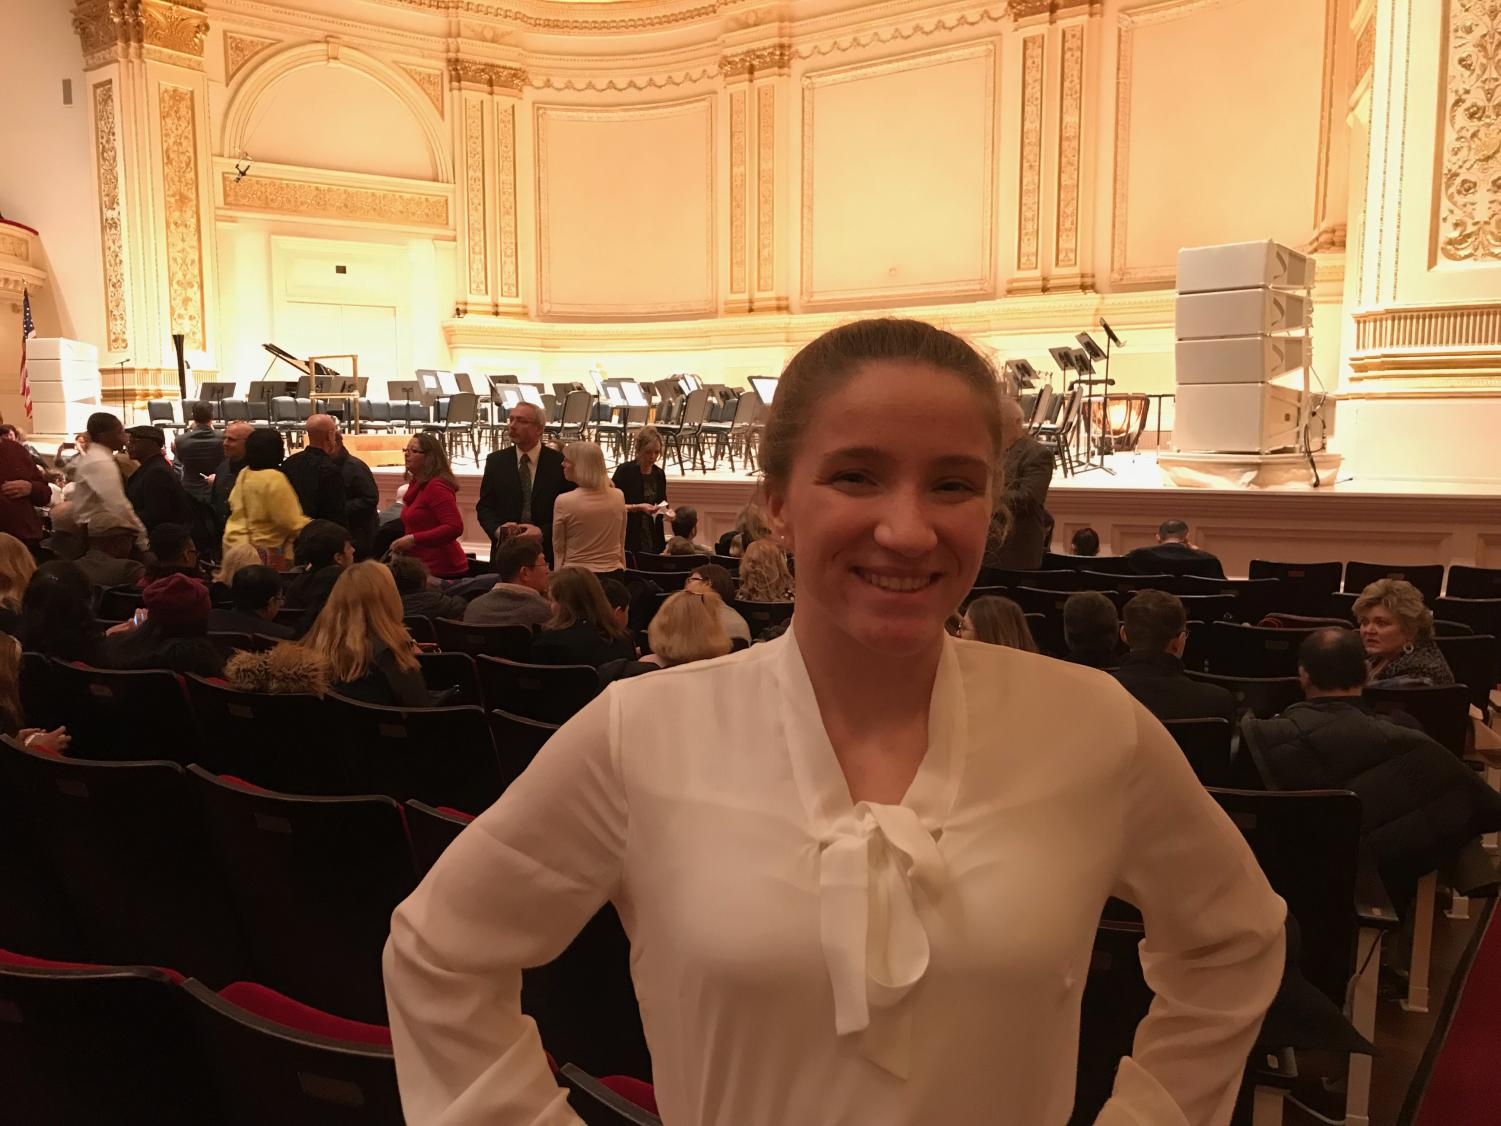 Setting the Stage. Performing at Carnegie Hall for the bass instrument at a national level orchestra, senior Alyssa Nagle takes the stage. This event ran Feb. 7-11.